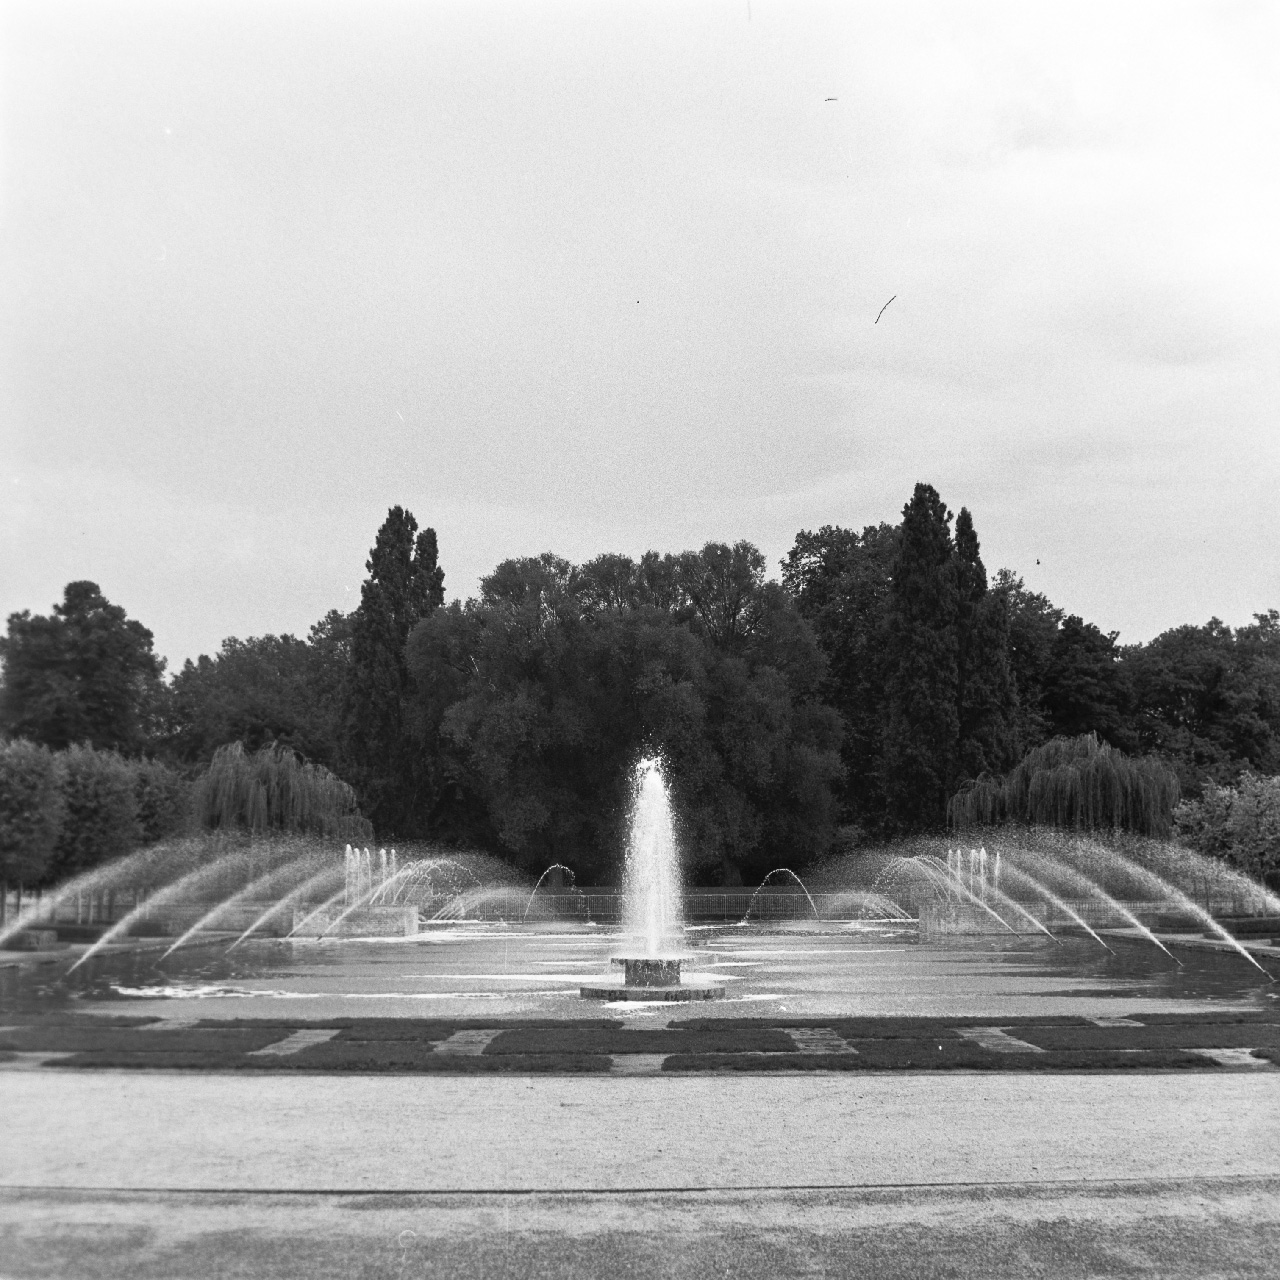 Fountain at Battersea park